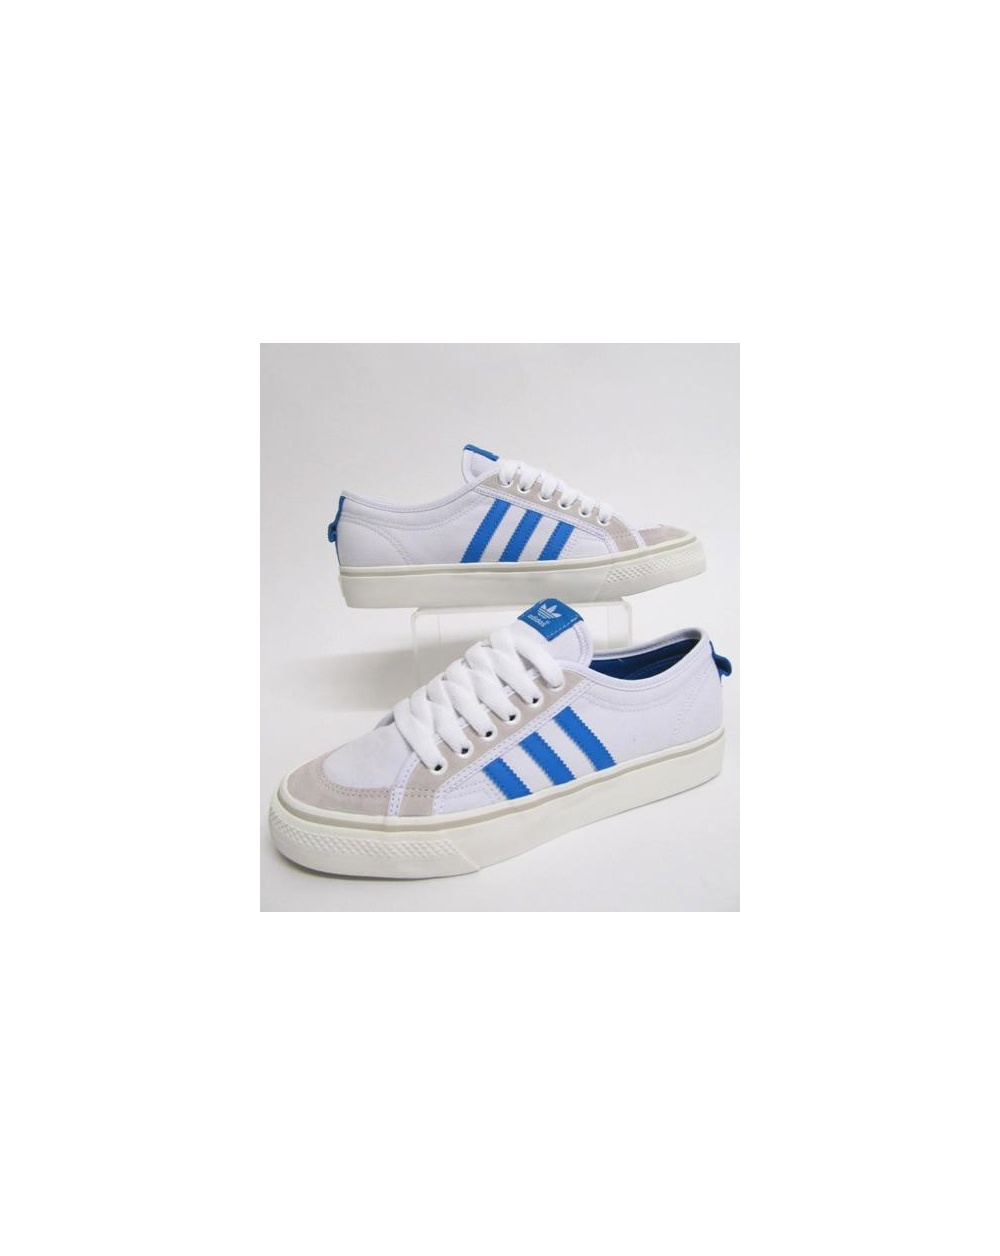 best service cb3f9 b63f4 adidas Trainers Adidas Nizza Low 78 Trainers White vapour Blue